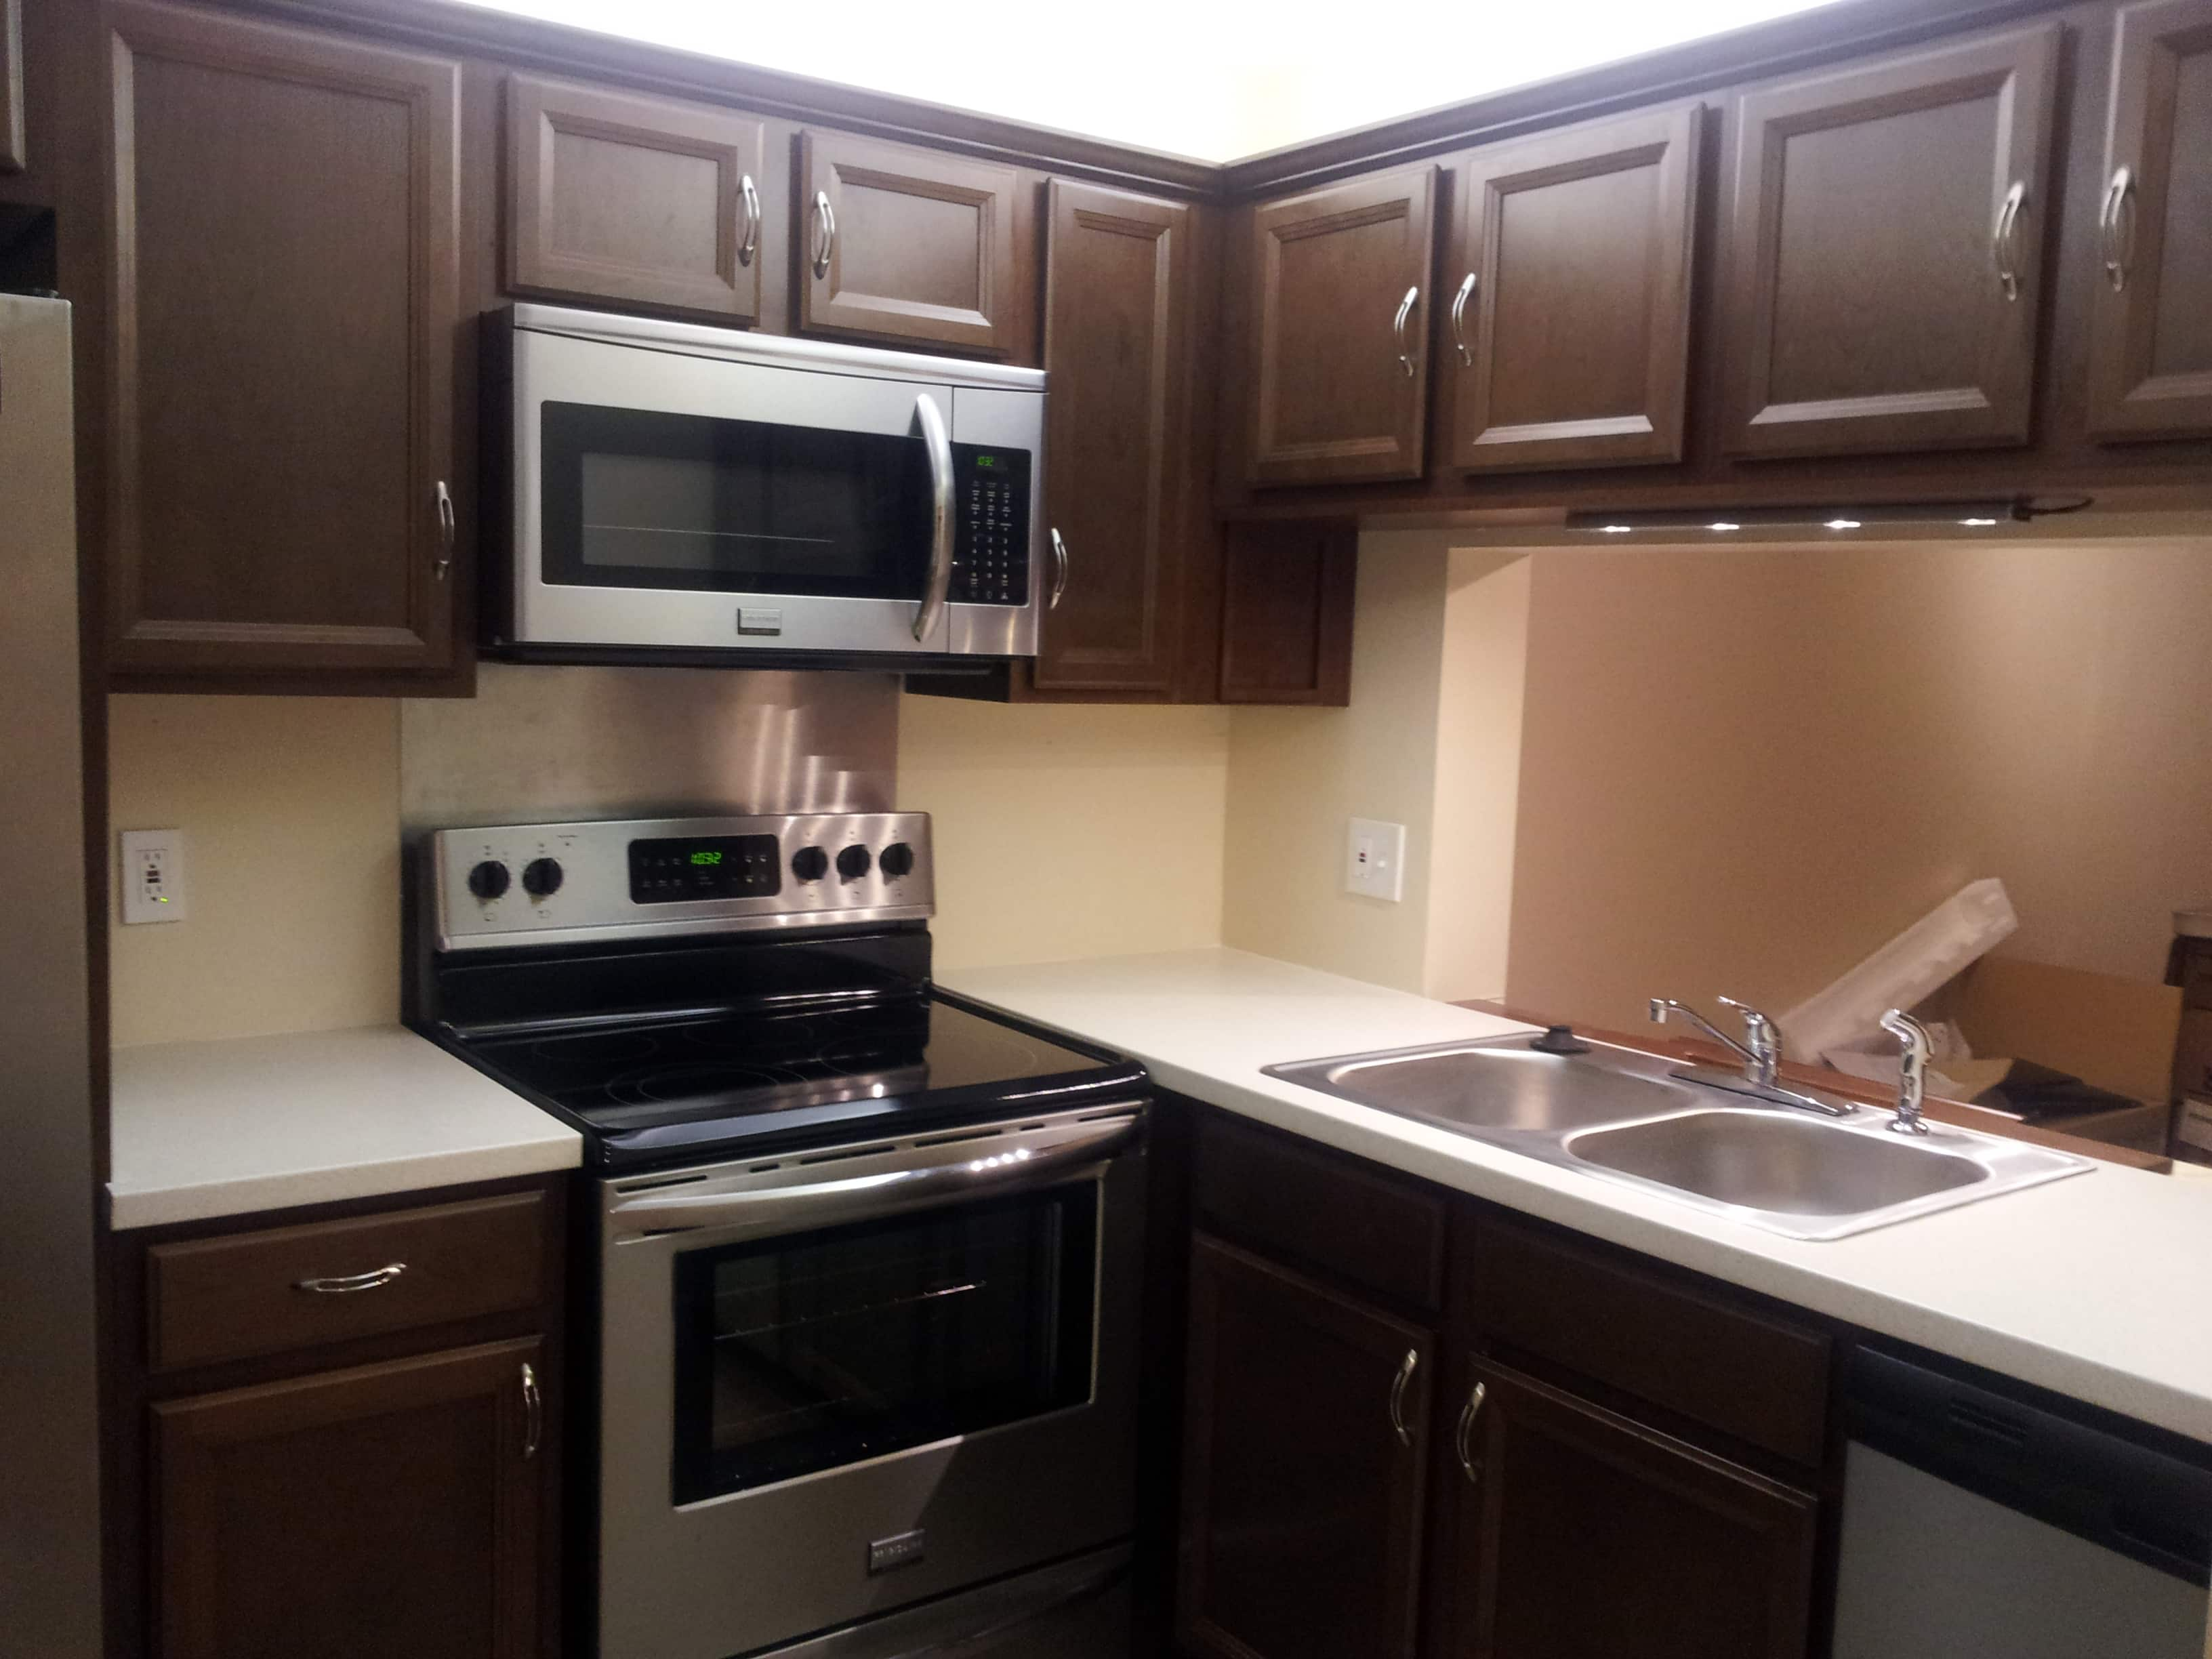 Where To Buy Cheap Kitchen Cabinets For Rental Prop